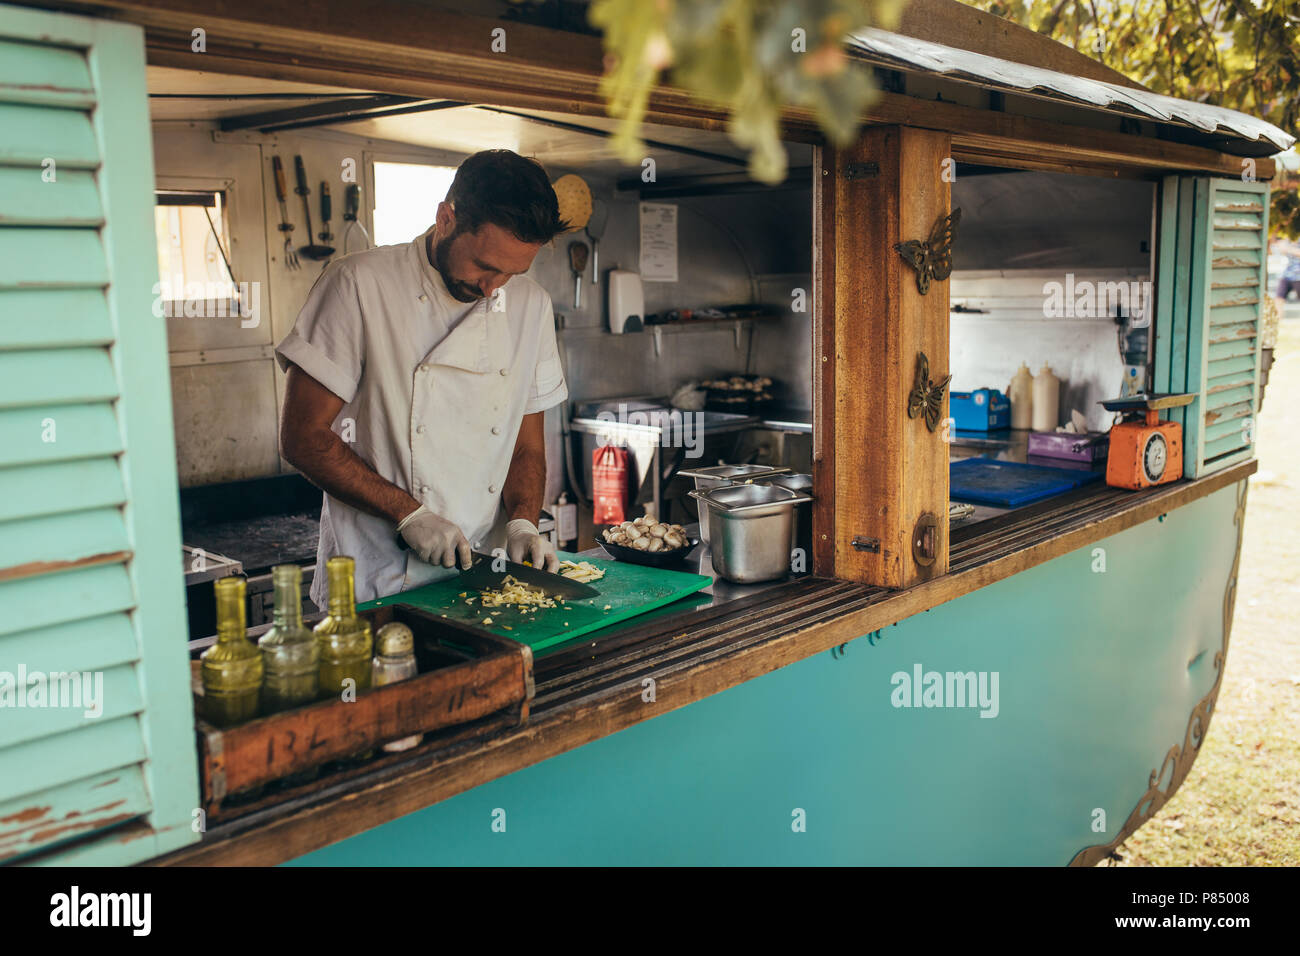 Man cooking some food in a mobile food truck parked under a tree. Man chopping vegetable on his food truck. - Stock Image